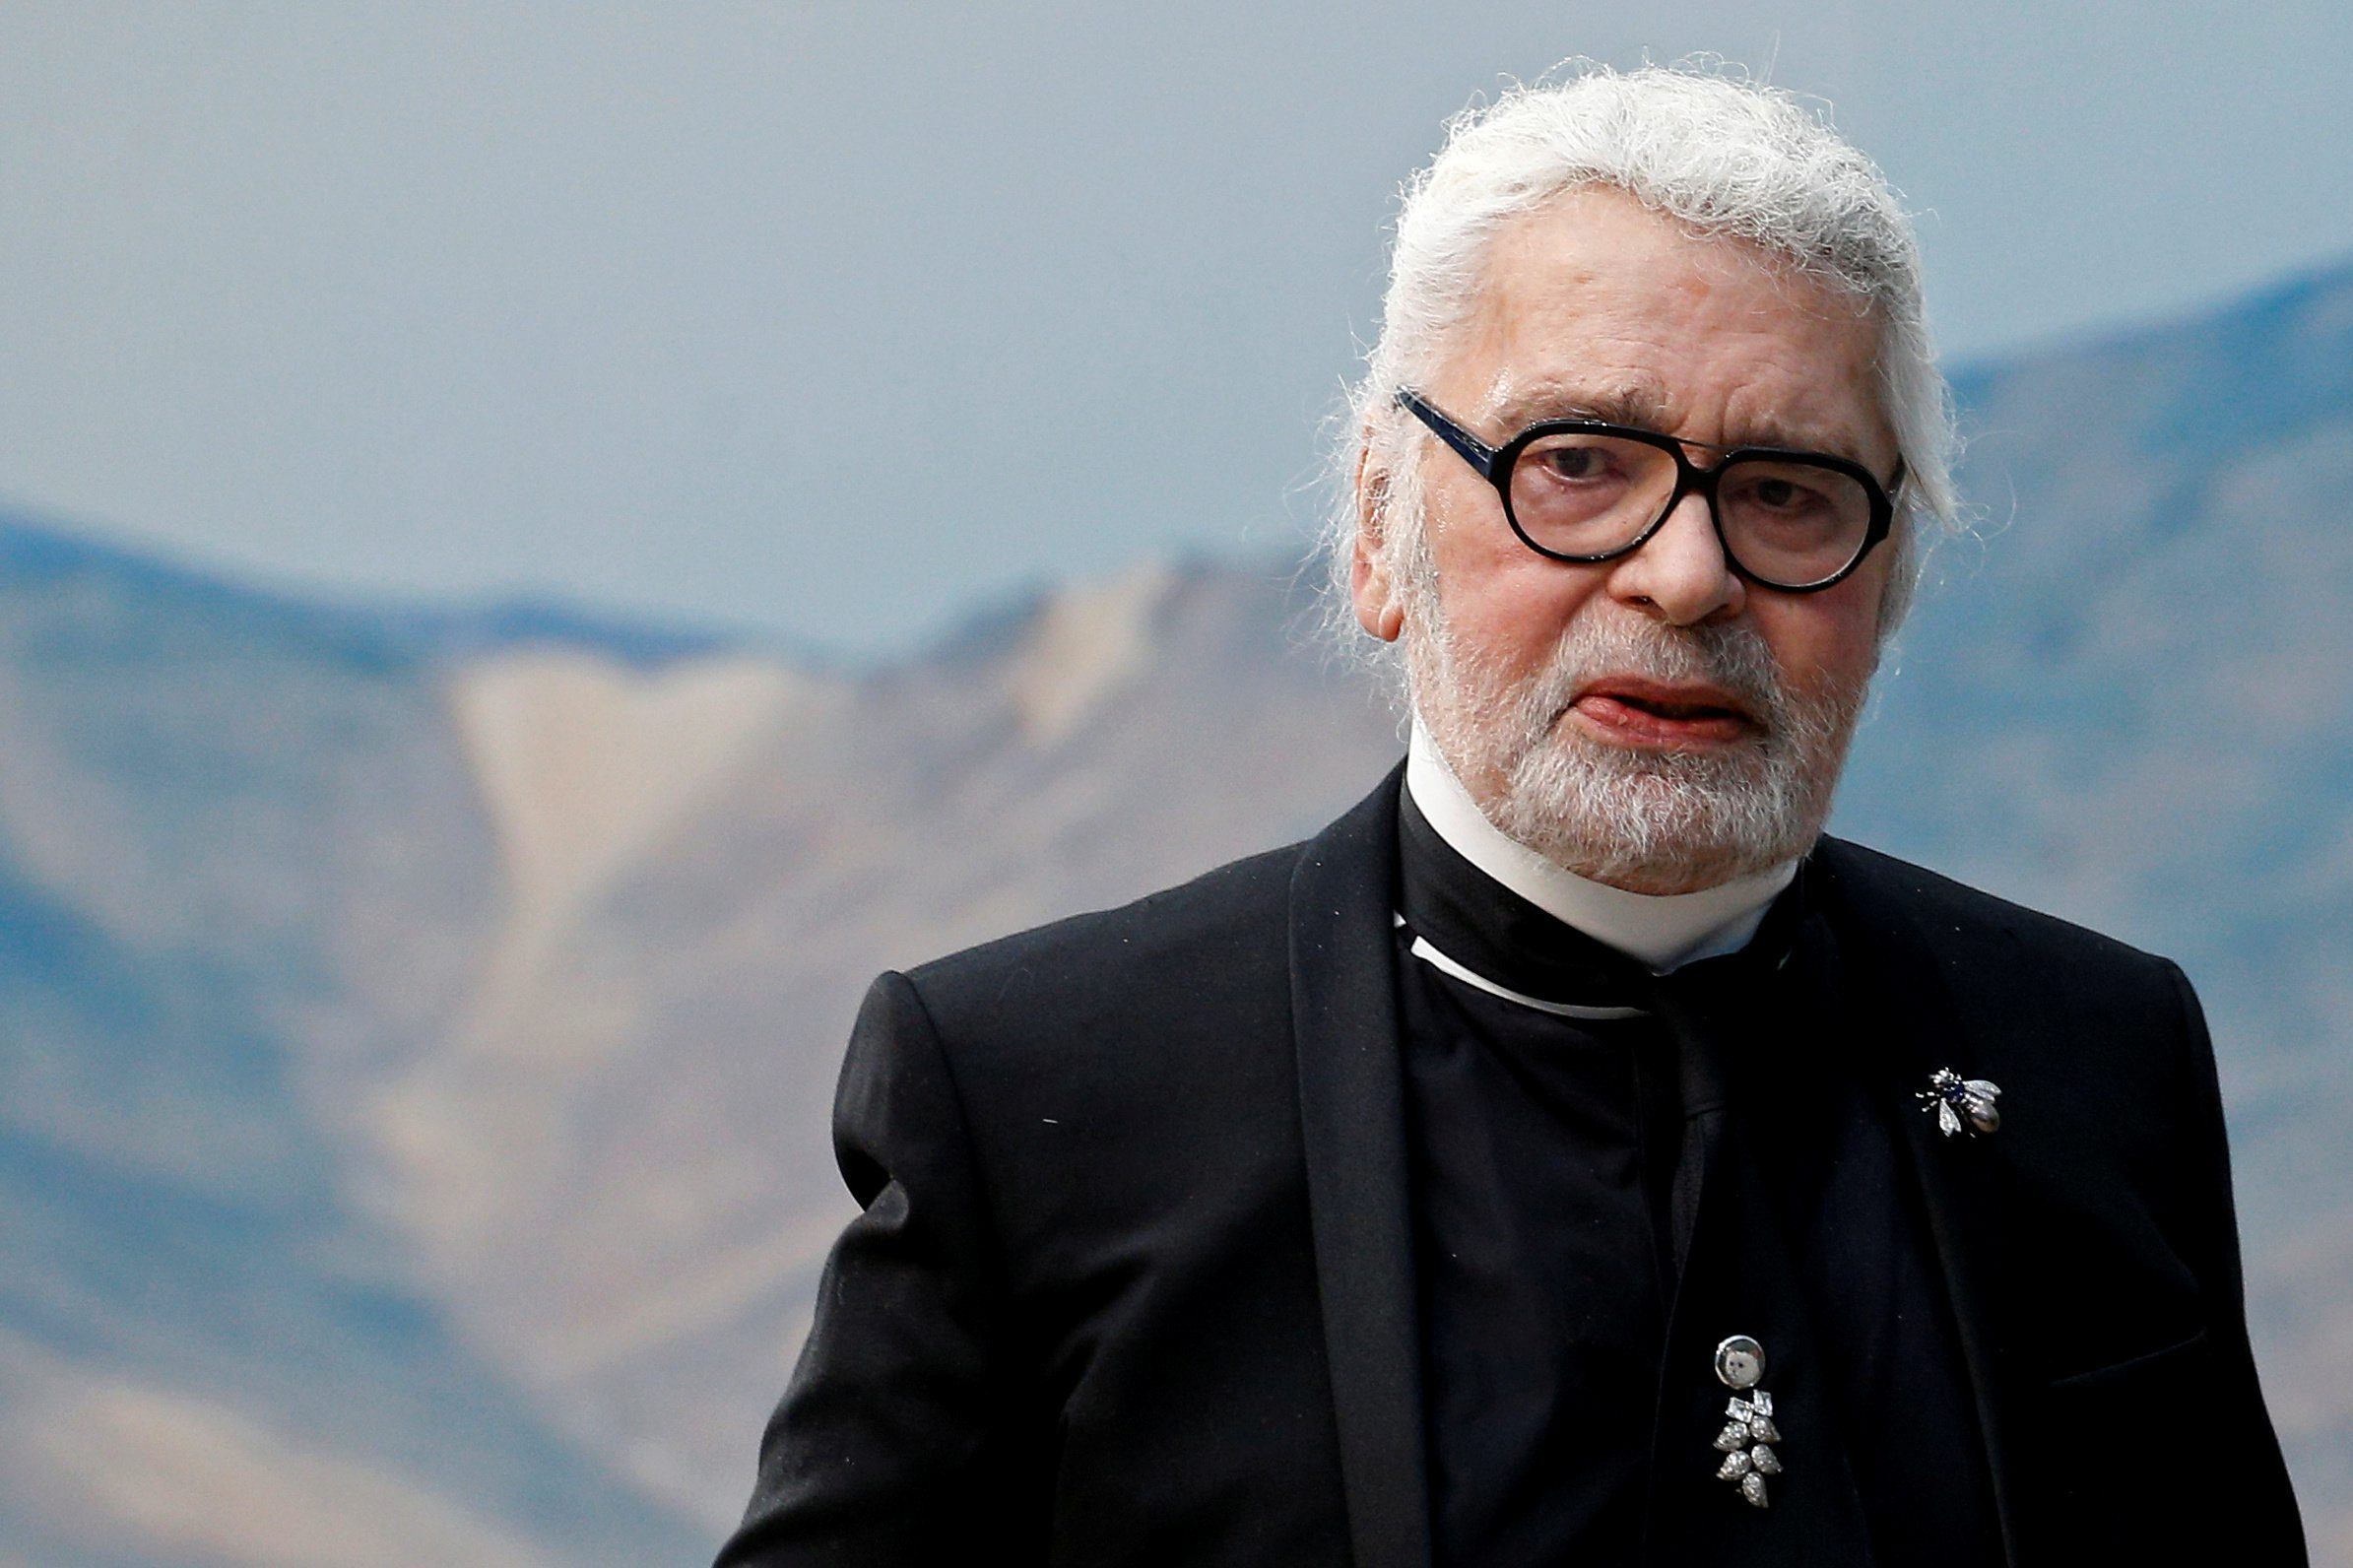 FILE PHOTO: German designer Karl Lagerfeld appears at the end of his Spring/Summer 2019 women's ready-to-wear collection show for fashion house Chanel during Paris Fashion Week in Paris, France, October 2, 2018. REUTERS/Stephane Mahe/File Photo